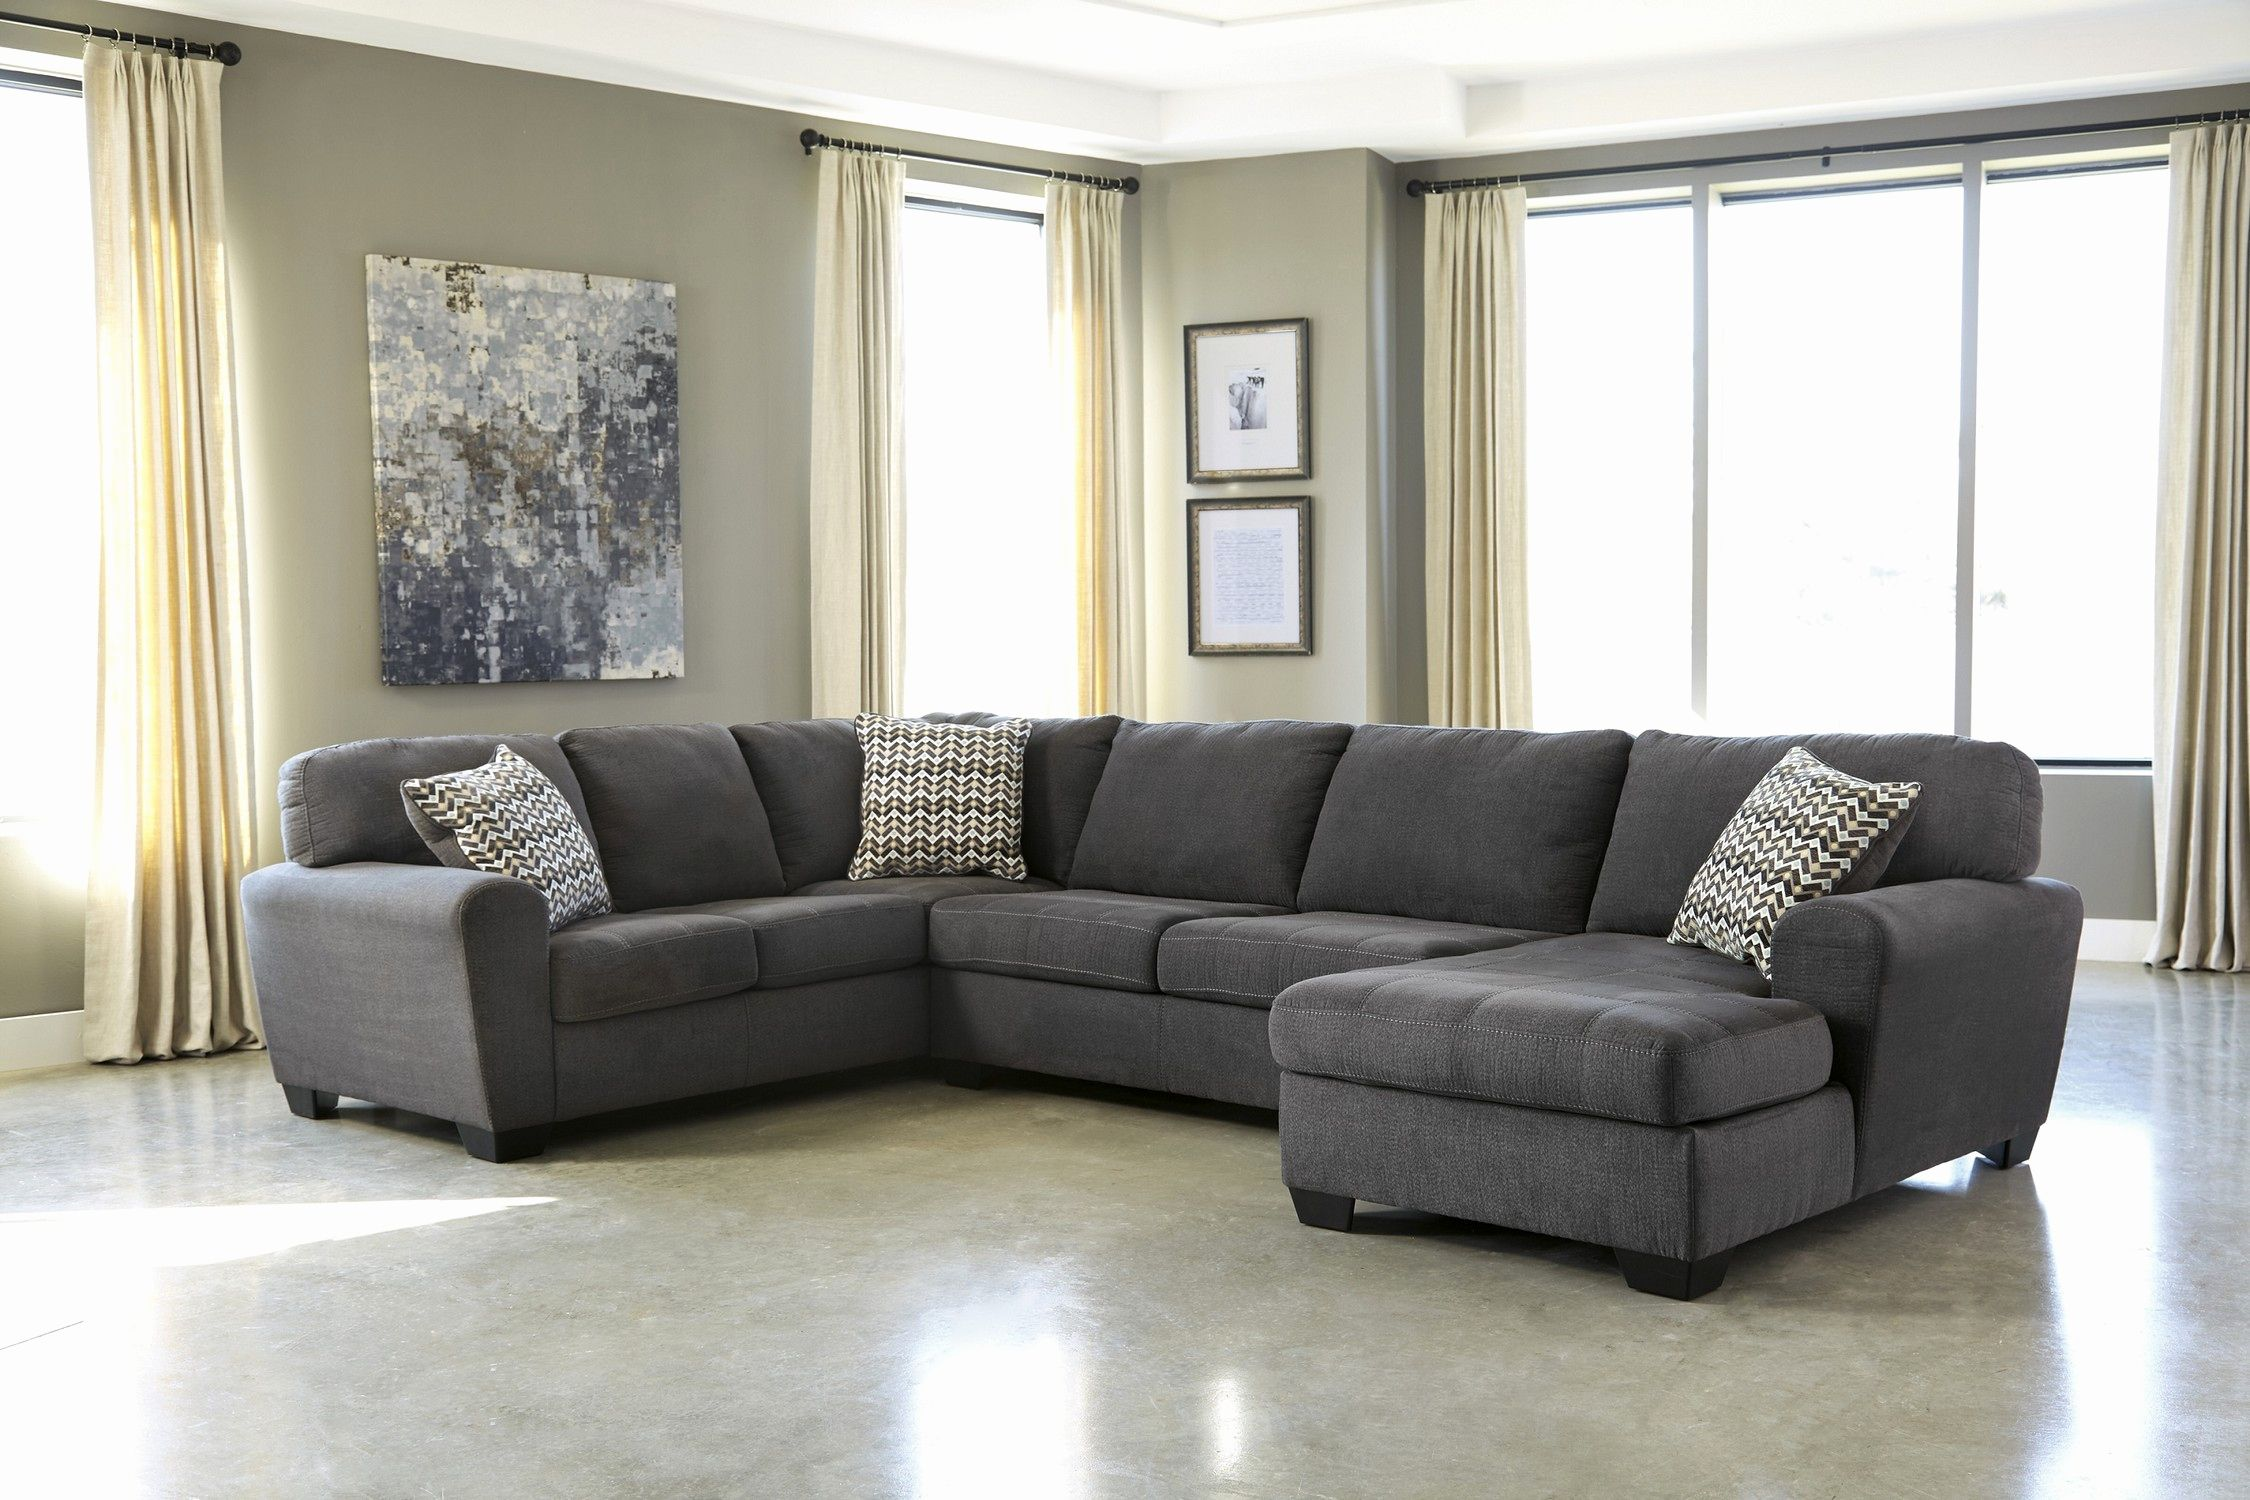 Unique Charcoal Gray Sectional Sofa With Chaise Lounge Pictures Inspirational